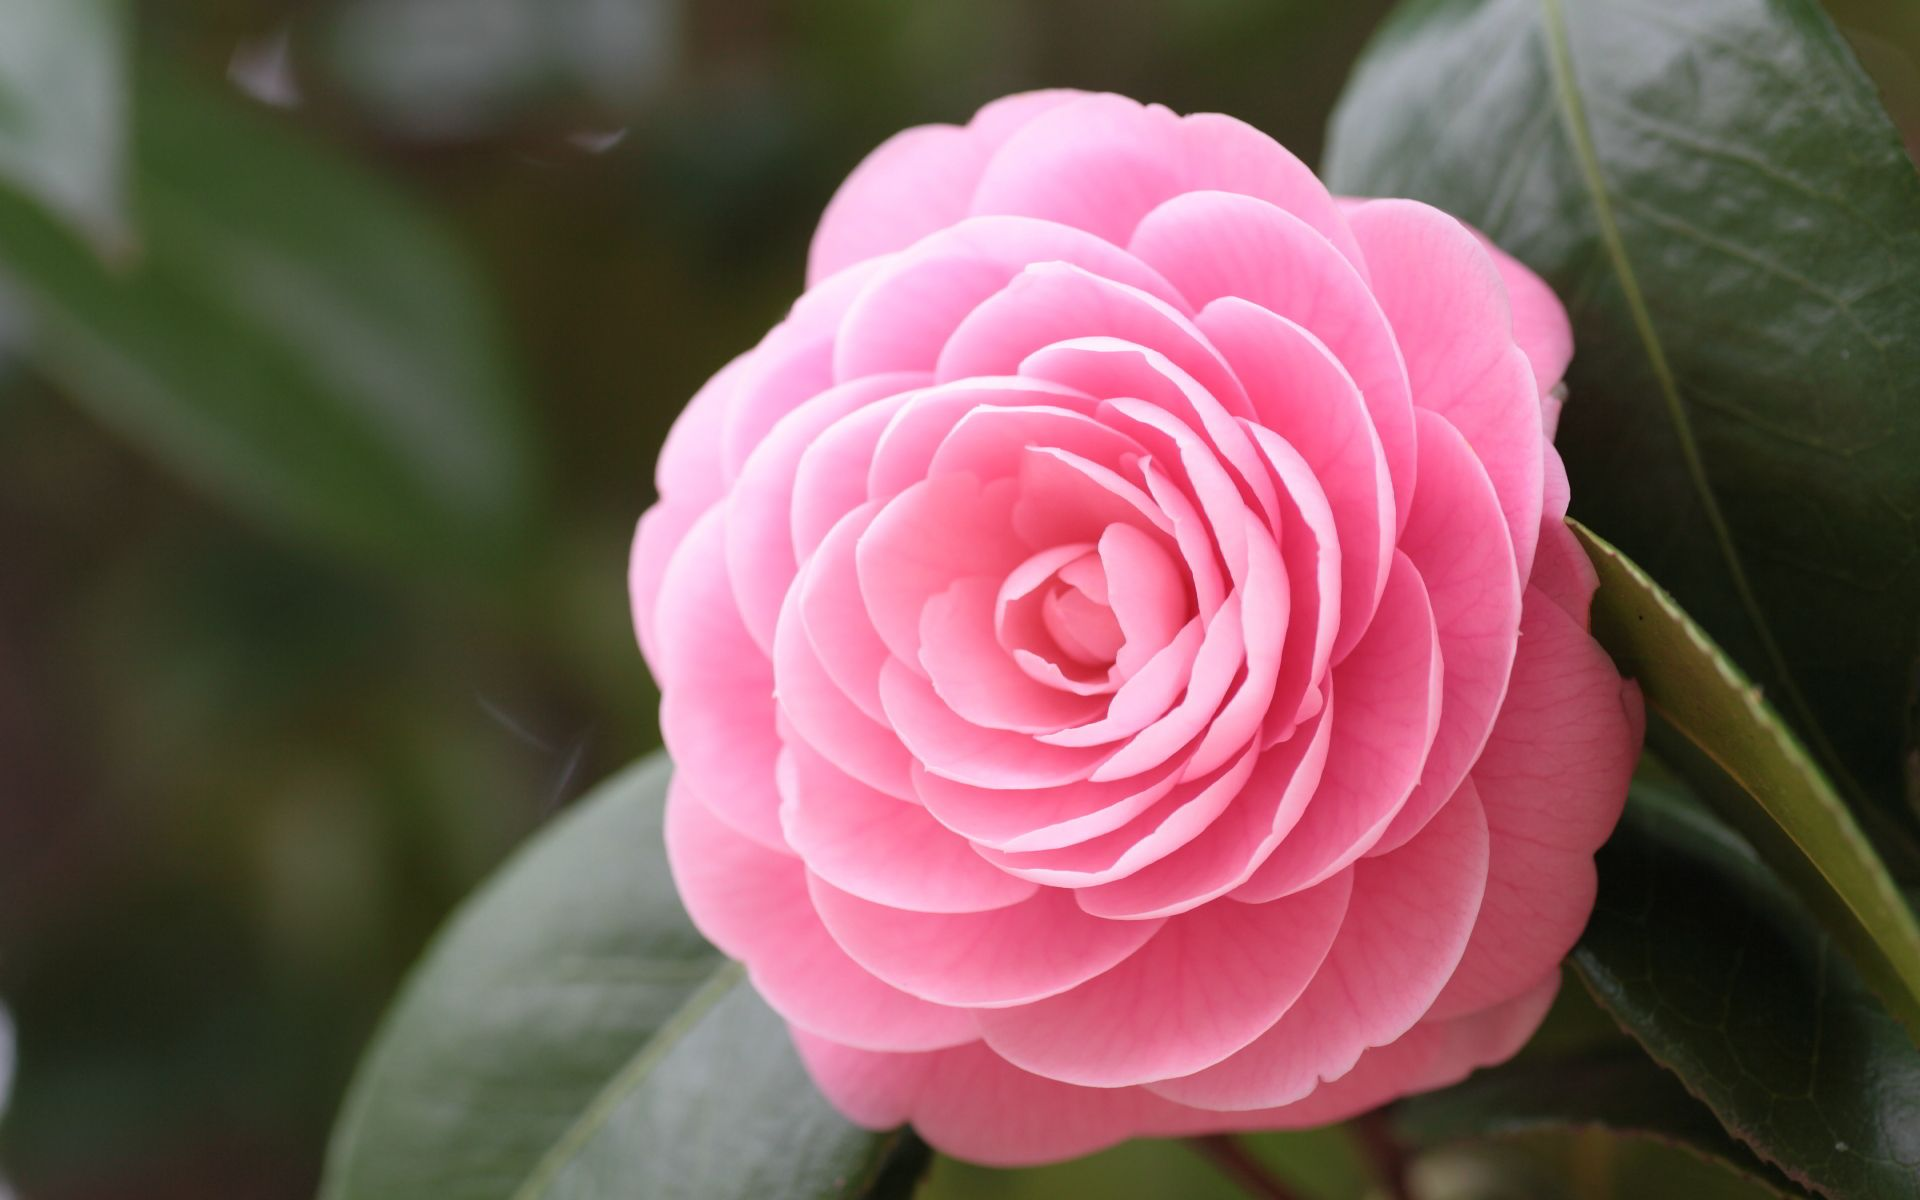 A Camelia Flower Exhibition Featuring 110 Species Of Flowers Will Start On January 28 At The Shanghai Botanic Garden De In 2020 Camellia Plant Flowers Blooming Rose